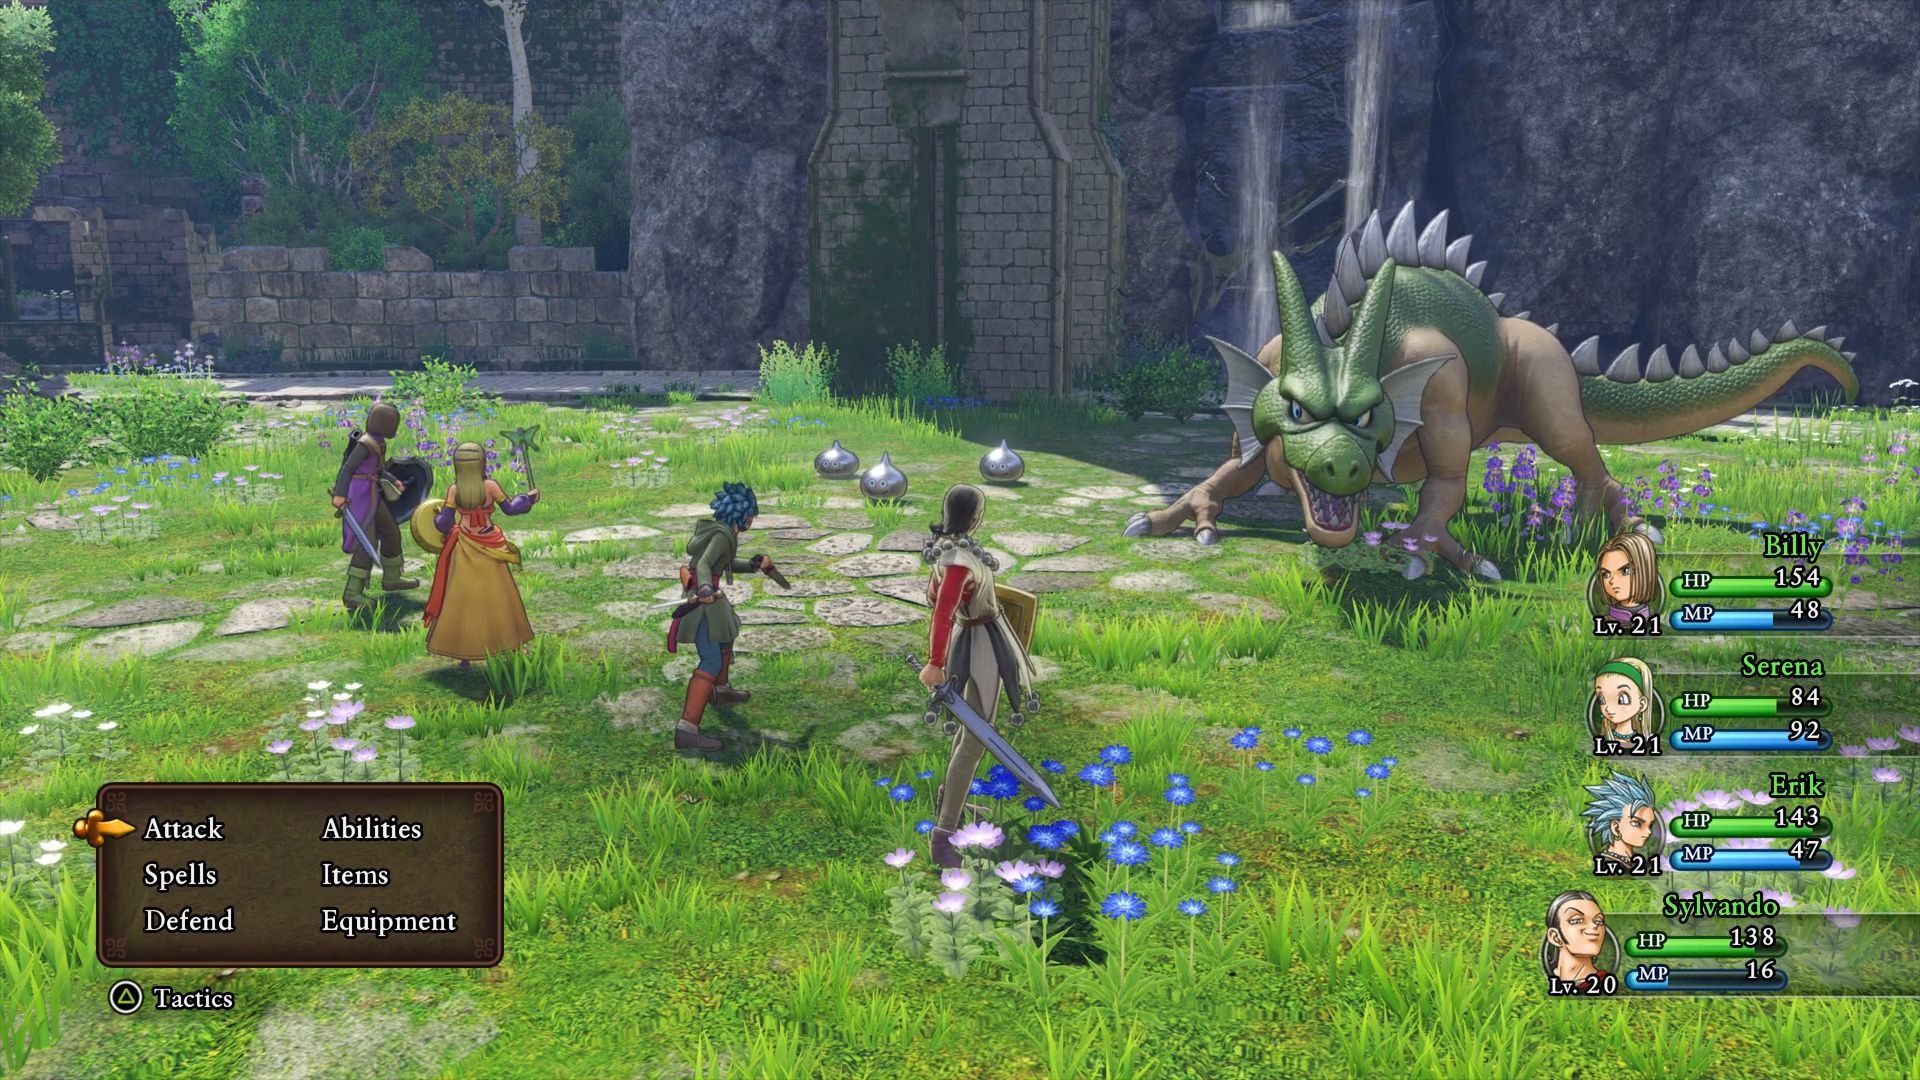 Dragon Quest XI S Best Party Guide: the best party builds and ...